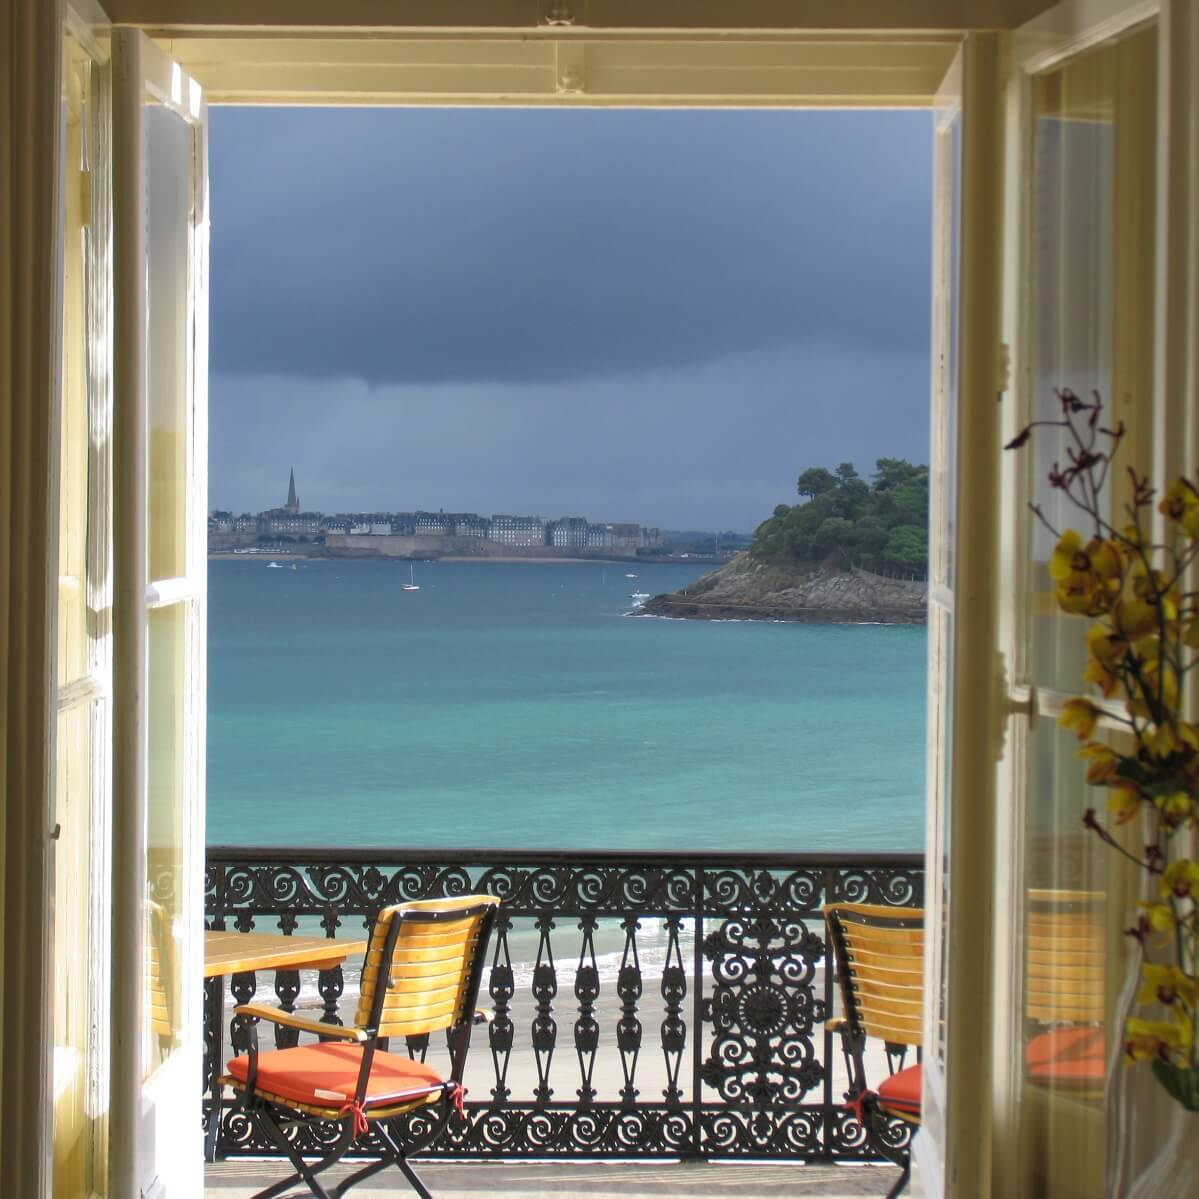 s lection de beaux h tels en bretagne avec vue sur la mer. Black Bedroom Furniture Sets. Home Design Ideas